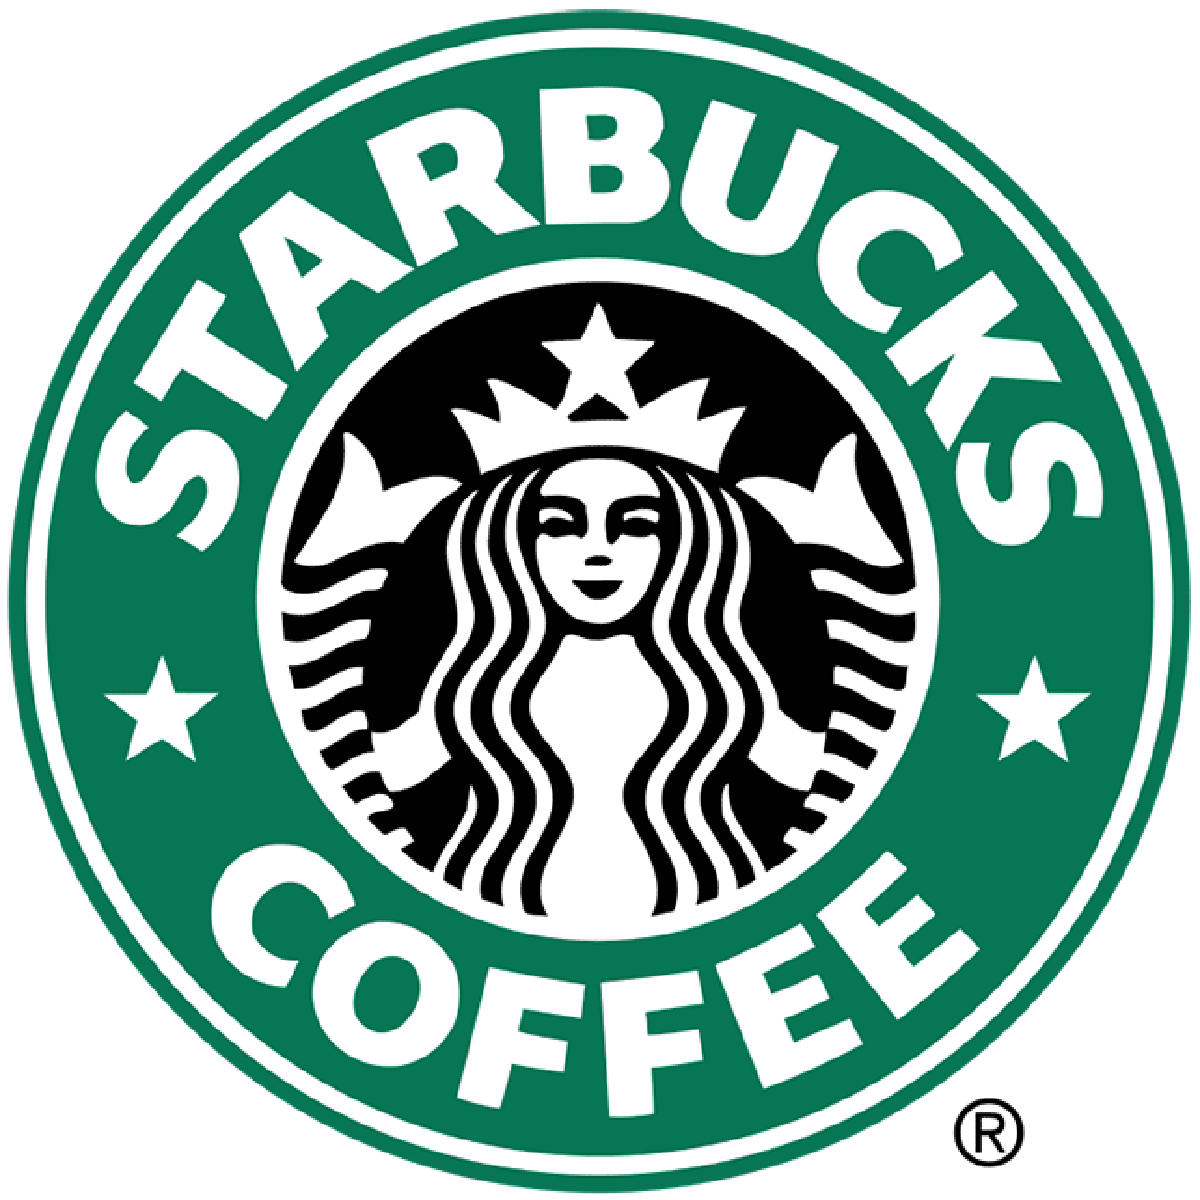 Starbucks Coffee Corp